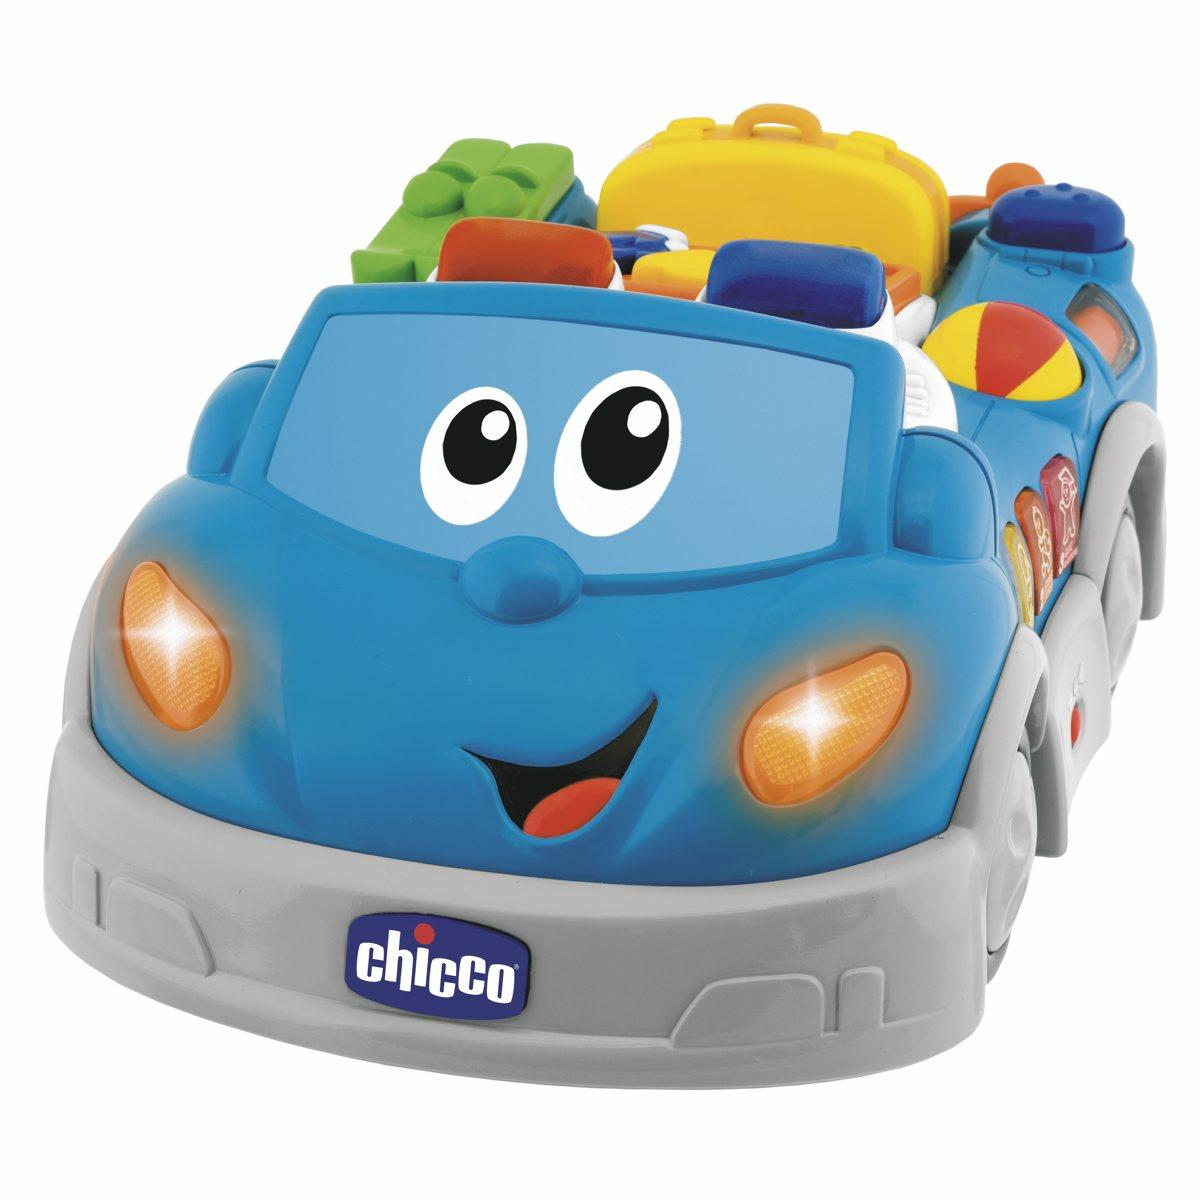 Chicco%20Happy%20Holiday%20Auto.jpg